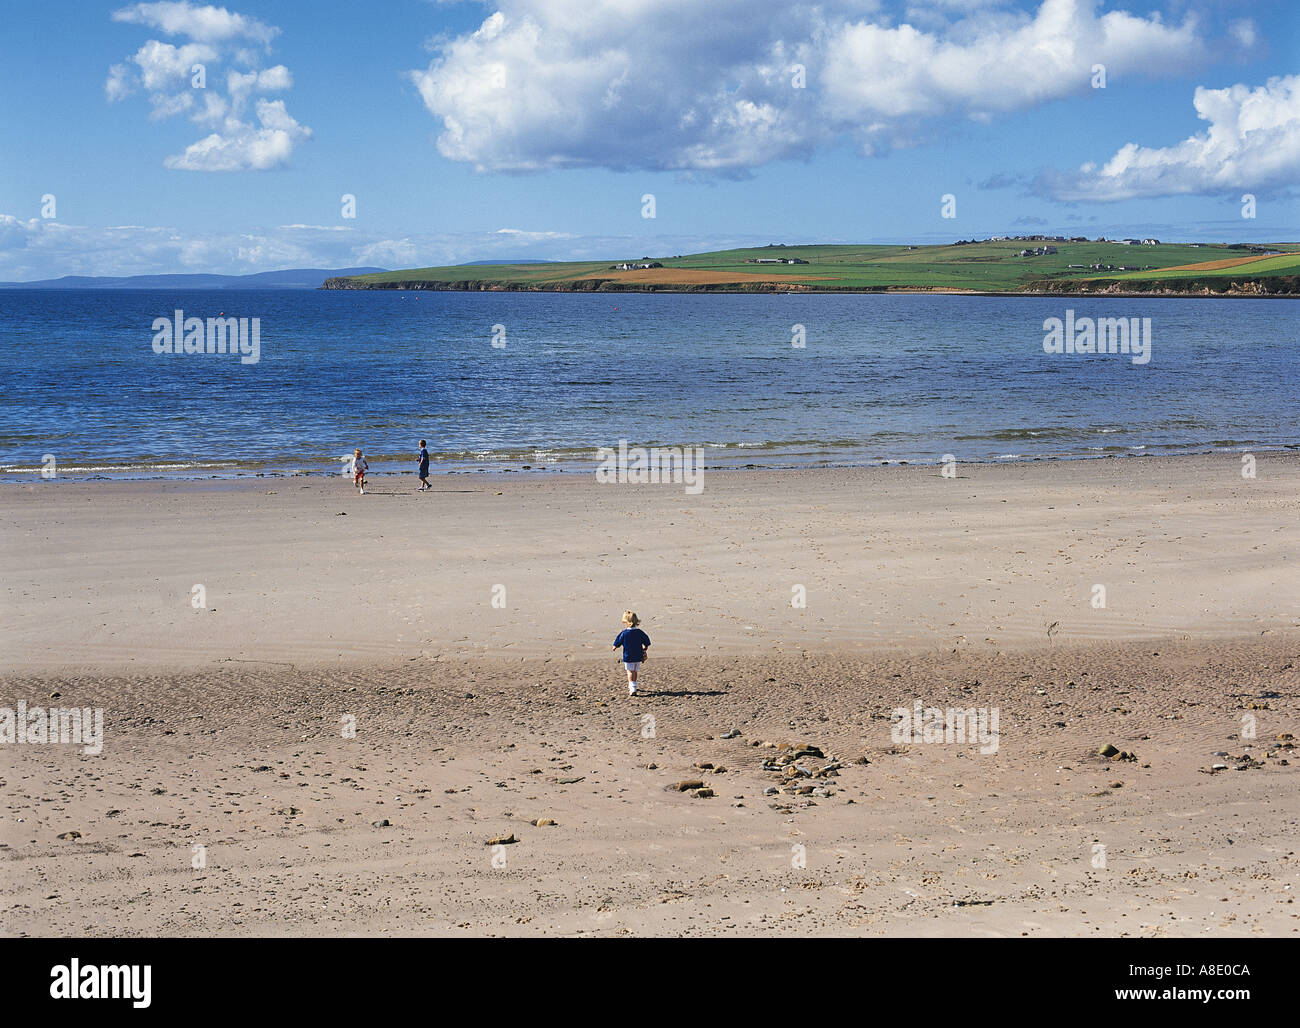 dh Scapa beach SCAPA BAY ORKNEY Scotland Three children white sandy beach holiday kids child playing sea uk Stock Photo